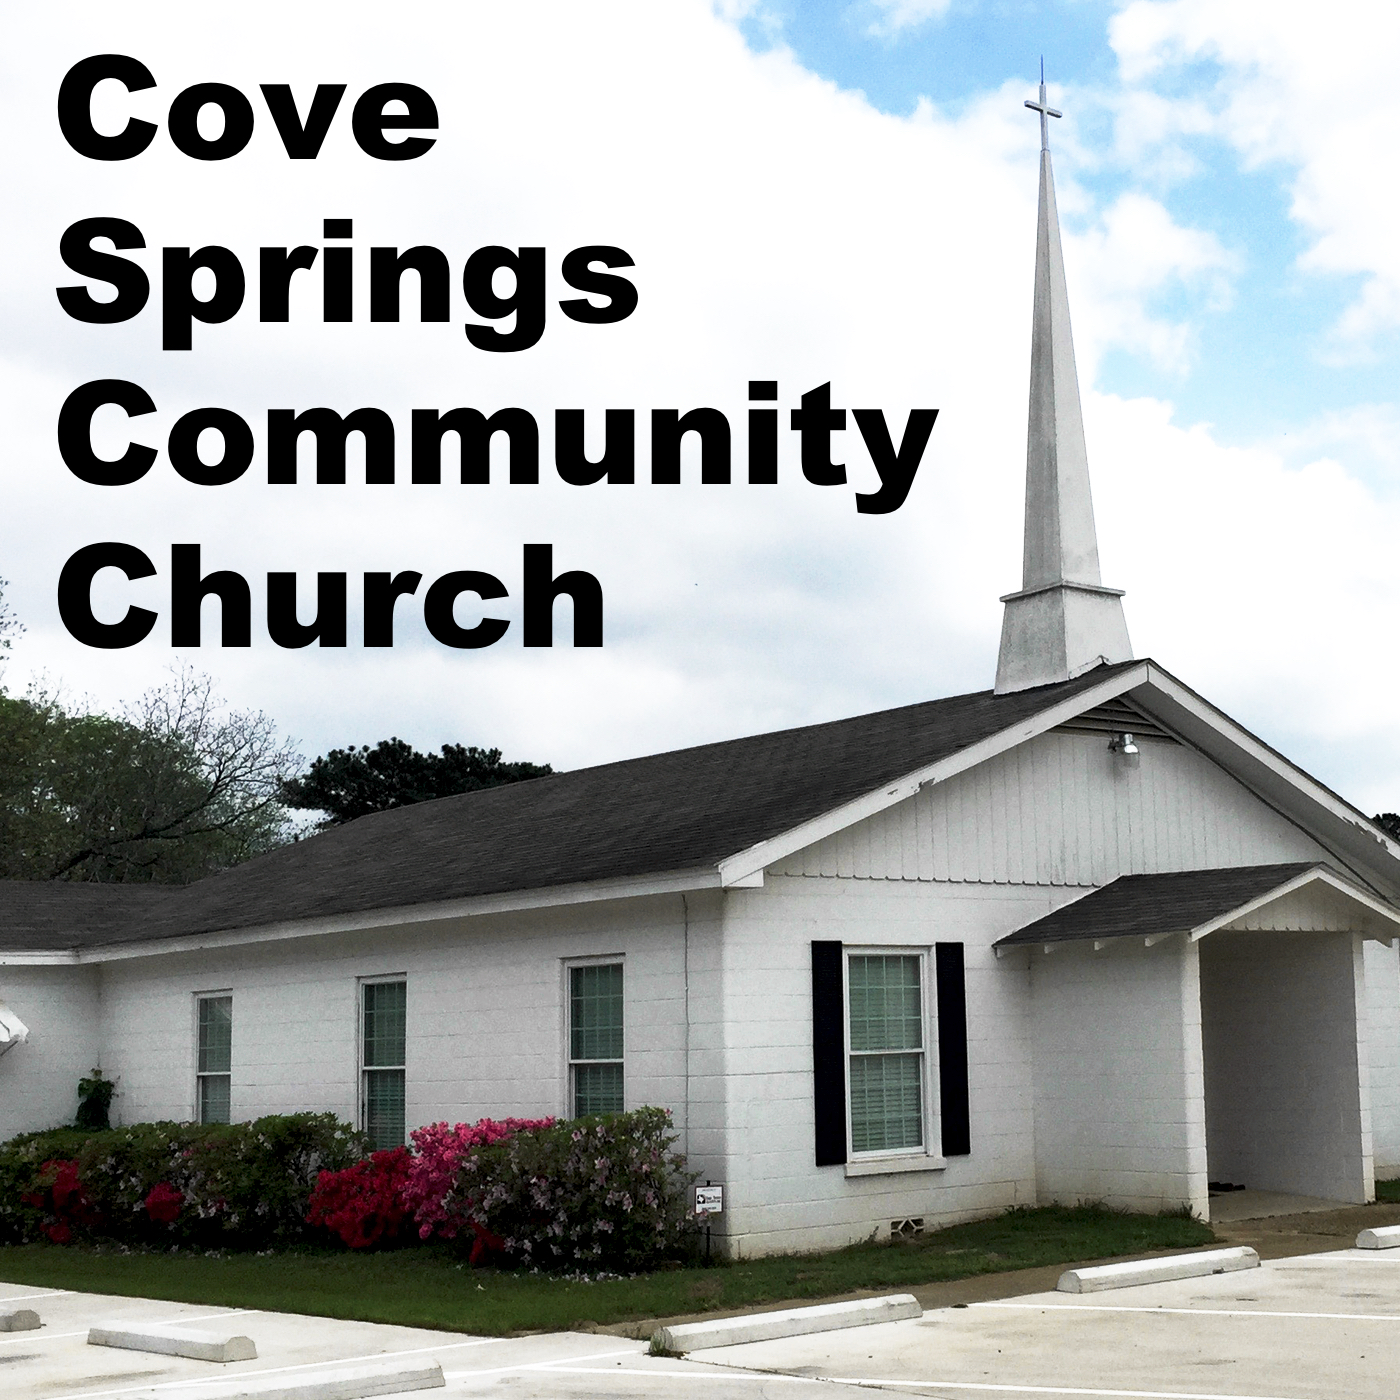 Cove Springs Community Church